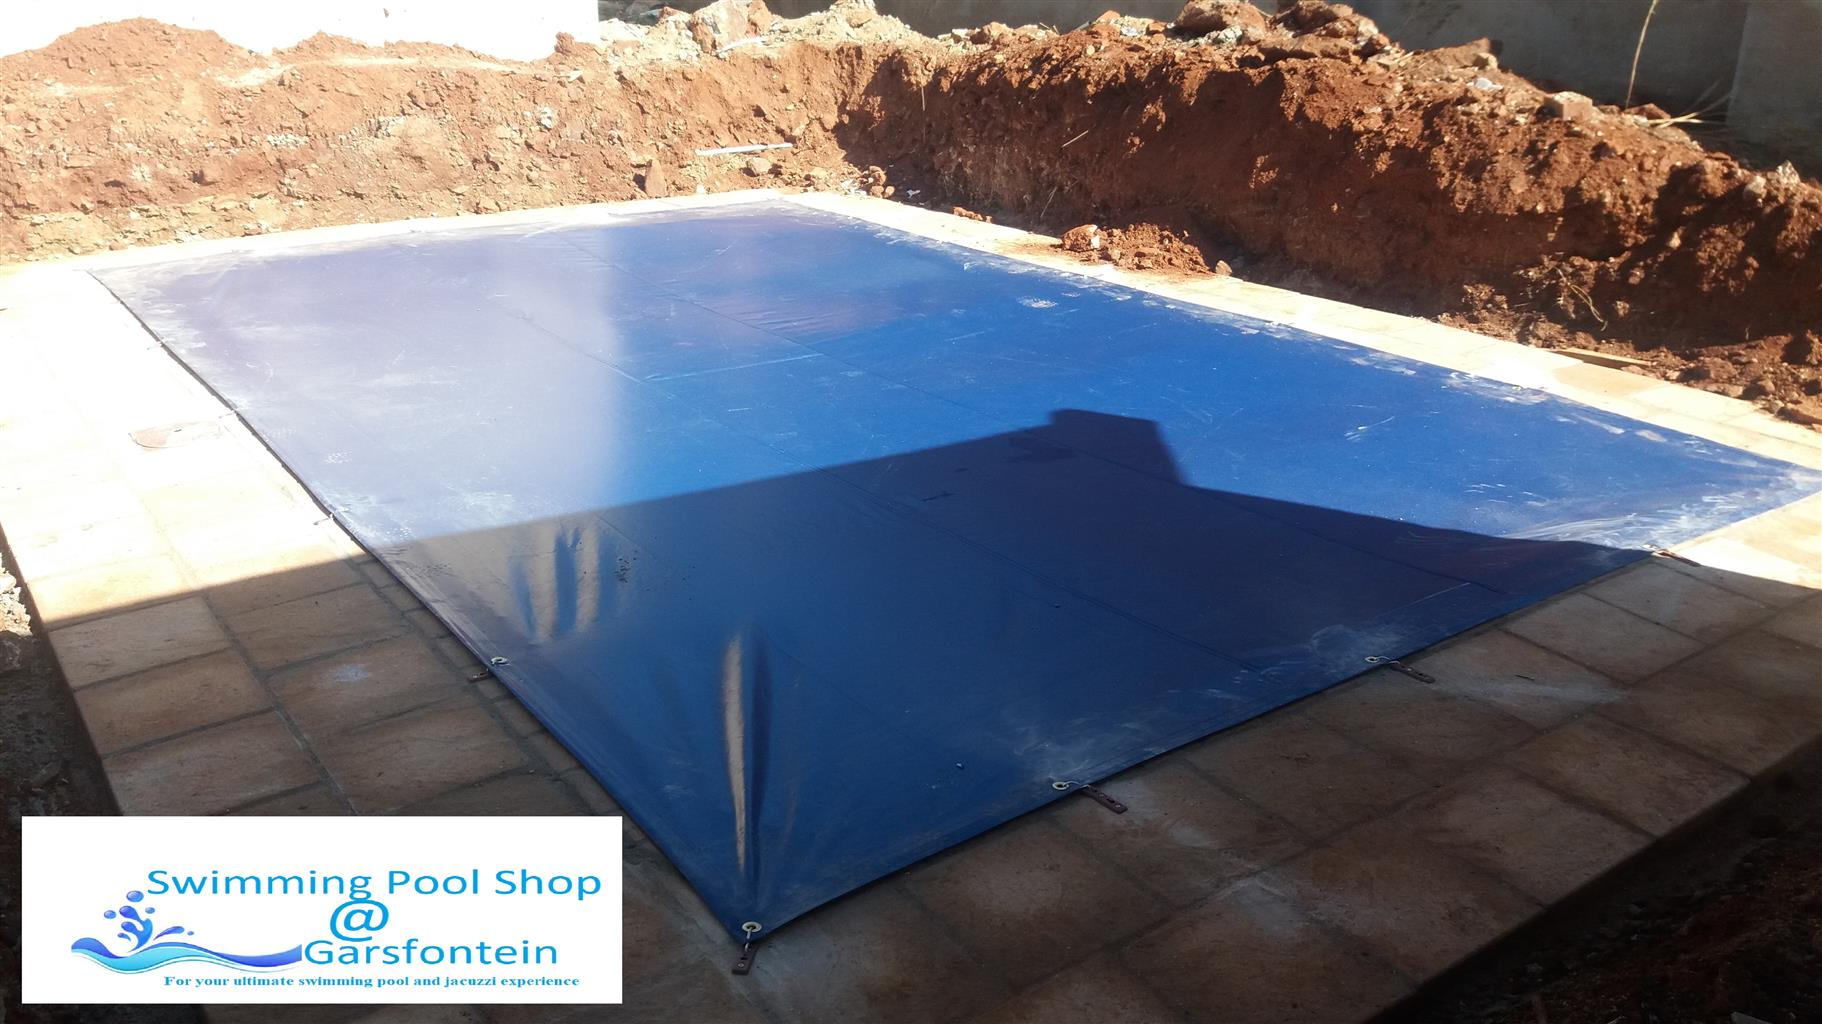 Jacuzzi Pool Covers Winterize Your Pool With A Pvc Pool Cover Junk Mail